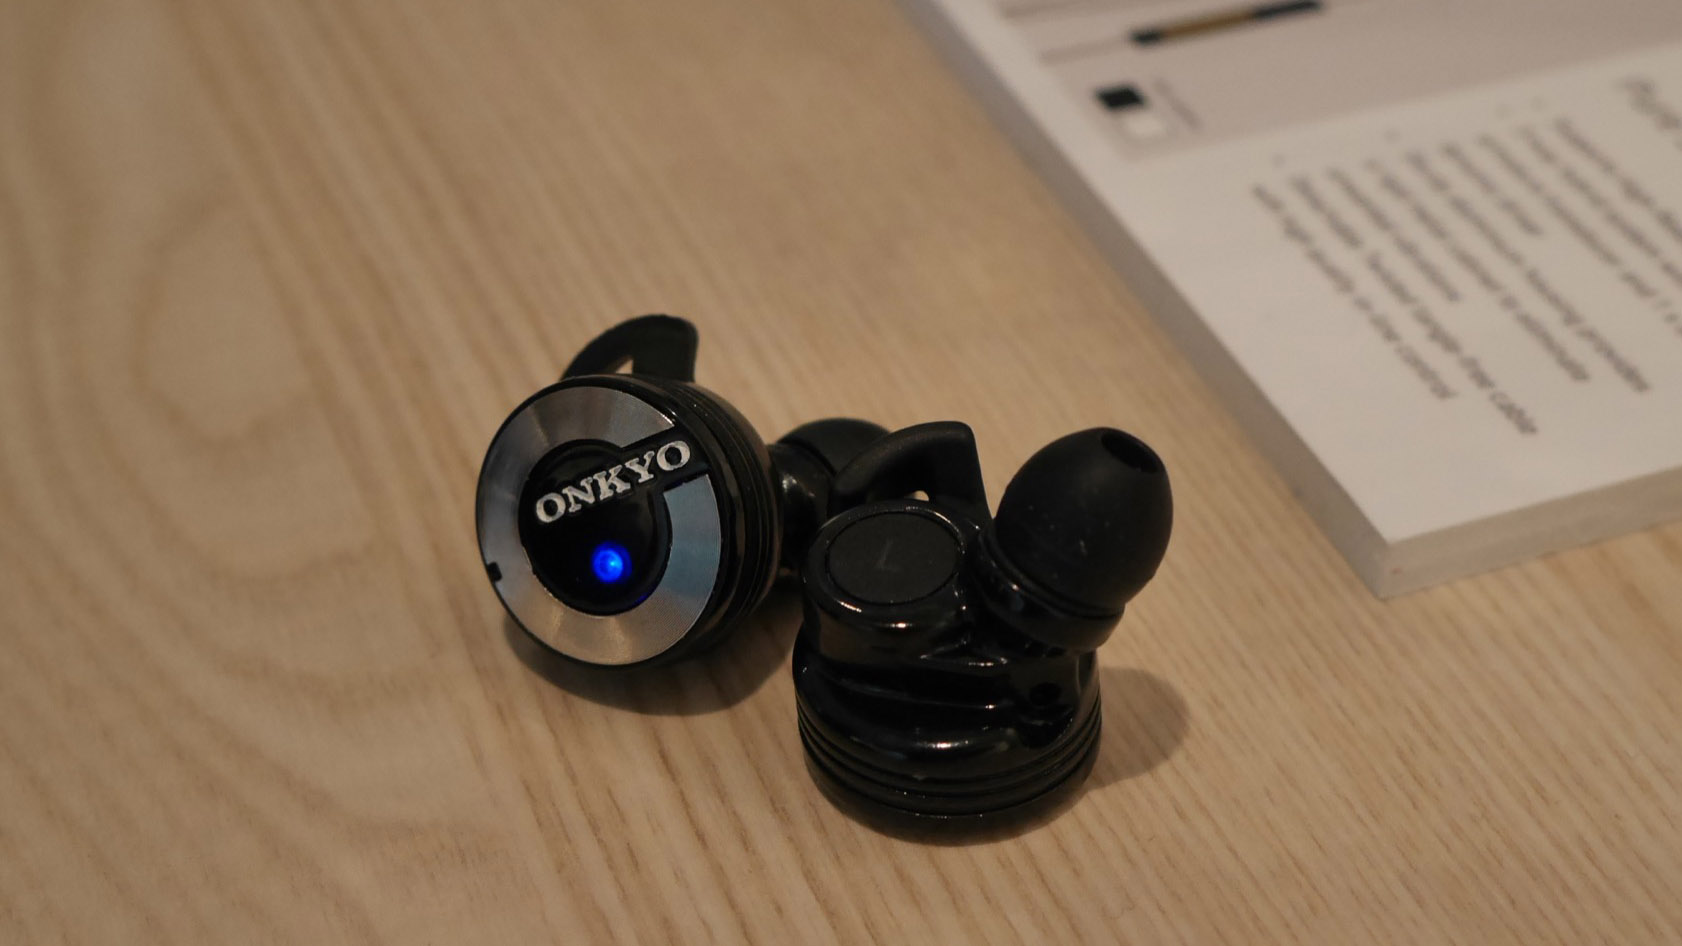 Onkyo Wireless In Ear Wire Center A604transmissiondiagramautomatic Grandcherokeew5j400automatic W800bt Headphones Review Hands On Expert Rh Expertreviews Co Uk